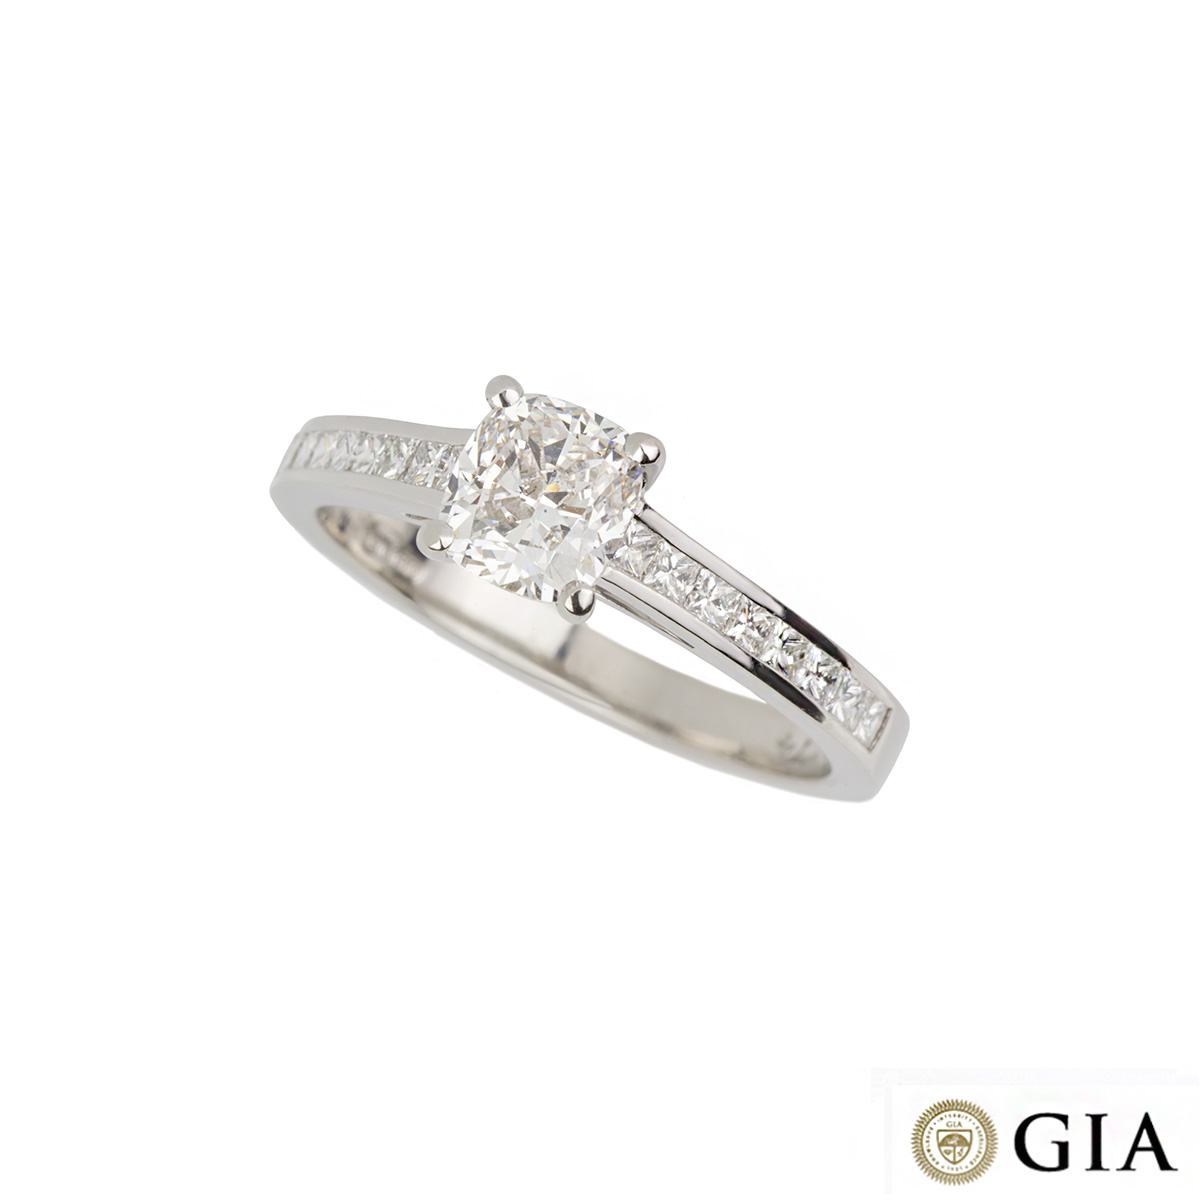 Cushion Cut Diamond Ring in Platinum 0.74ct G/VS1